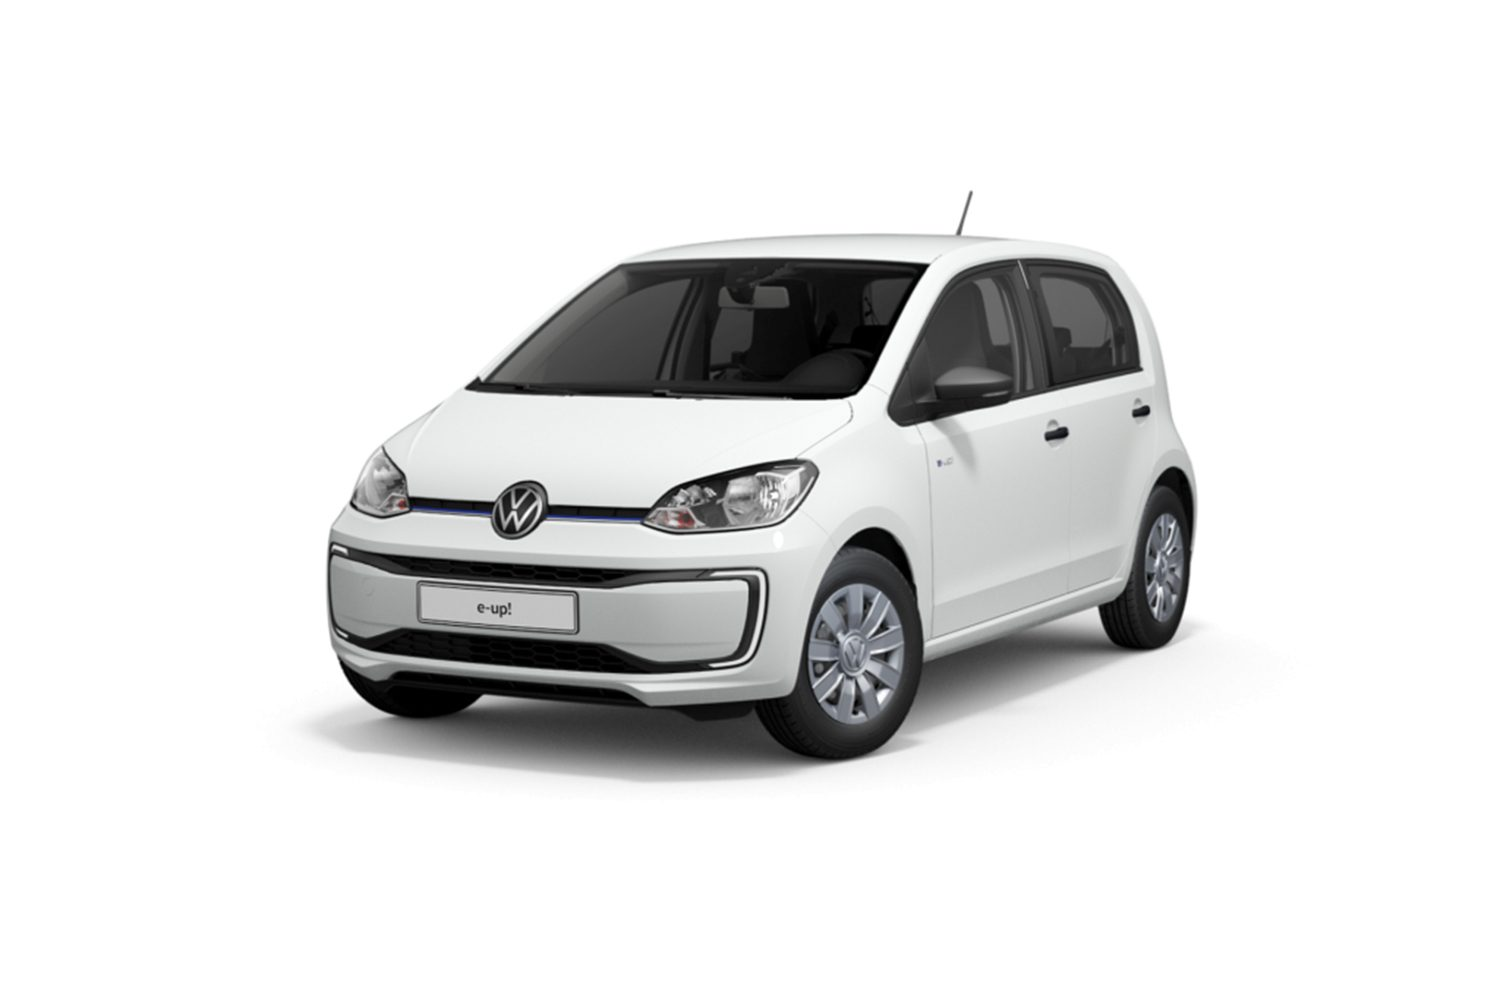 Volkswagen up! 1.0l